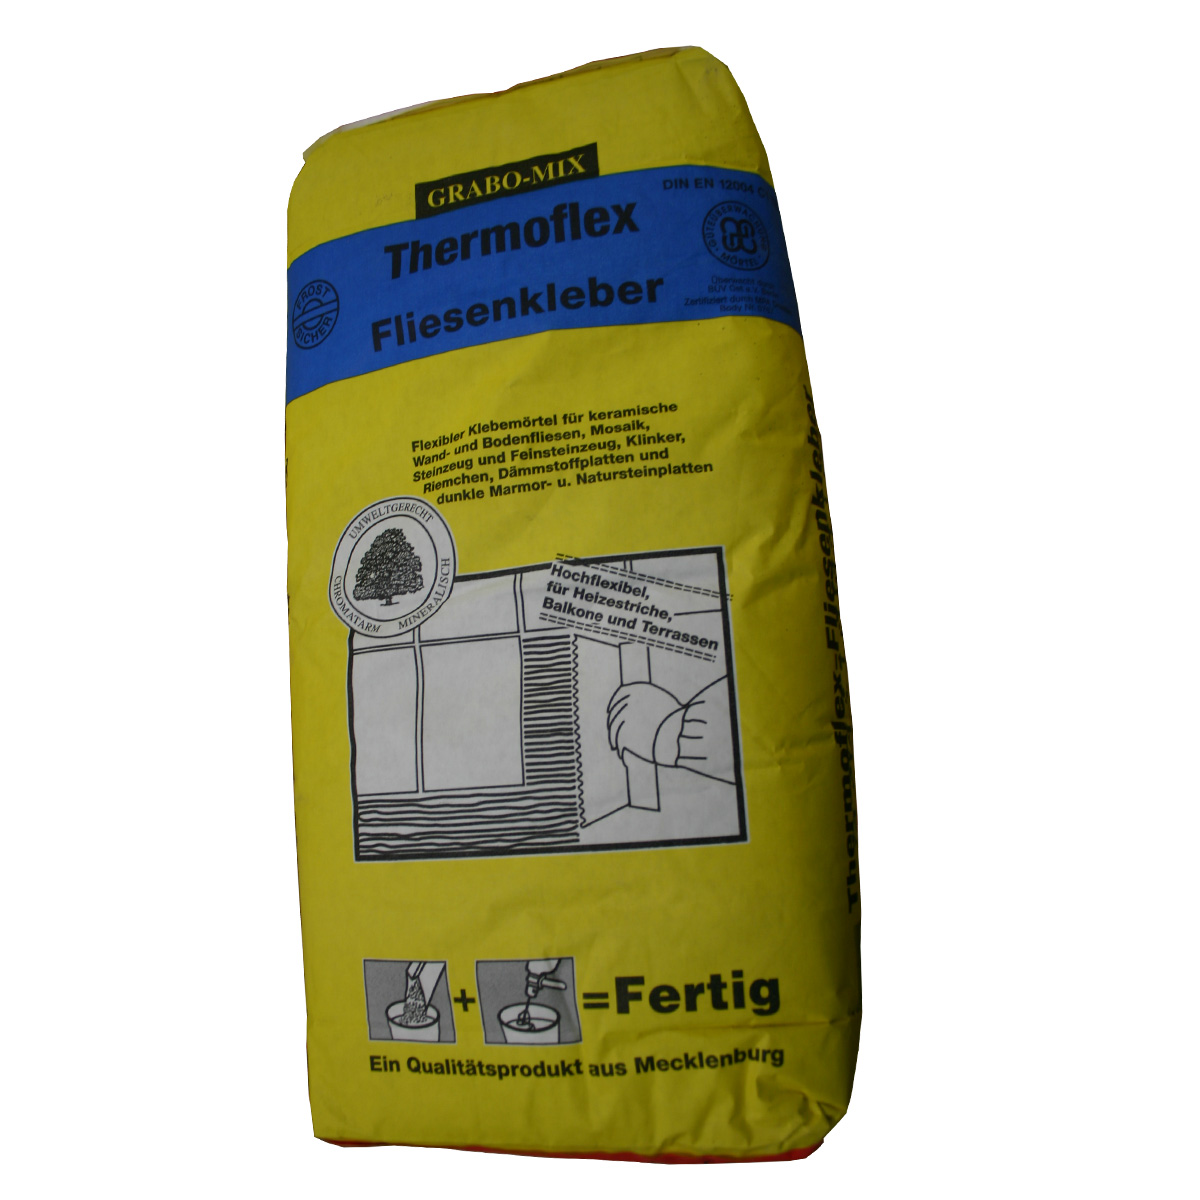 Thermoflex fliesenkleber 25 kg sack flexkleber flexibler for Fliesenkleber frostsicher